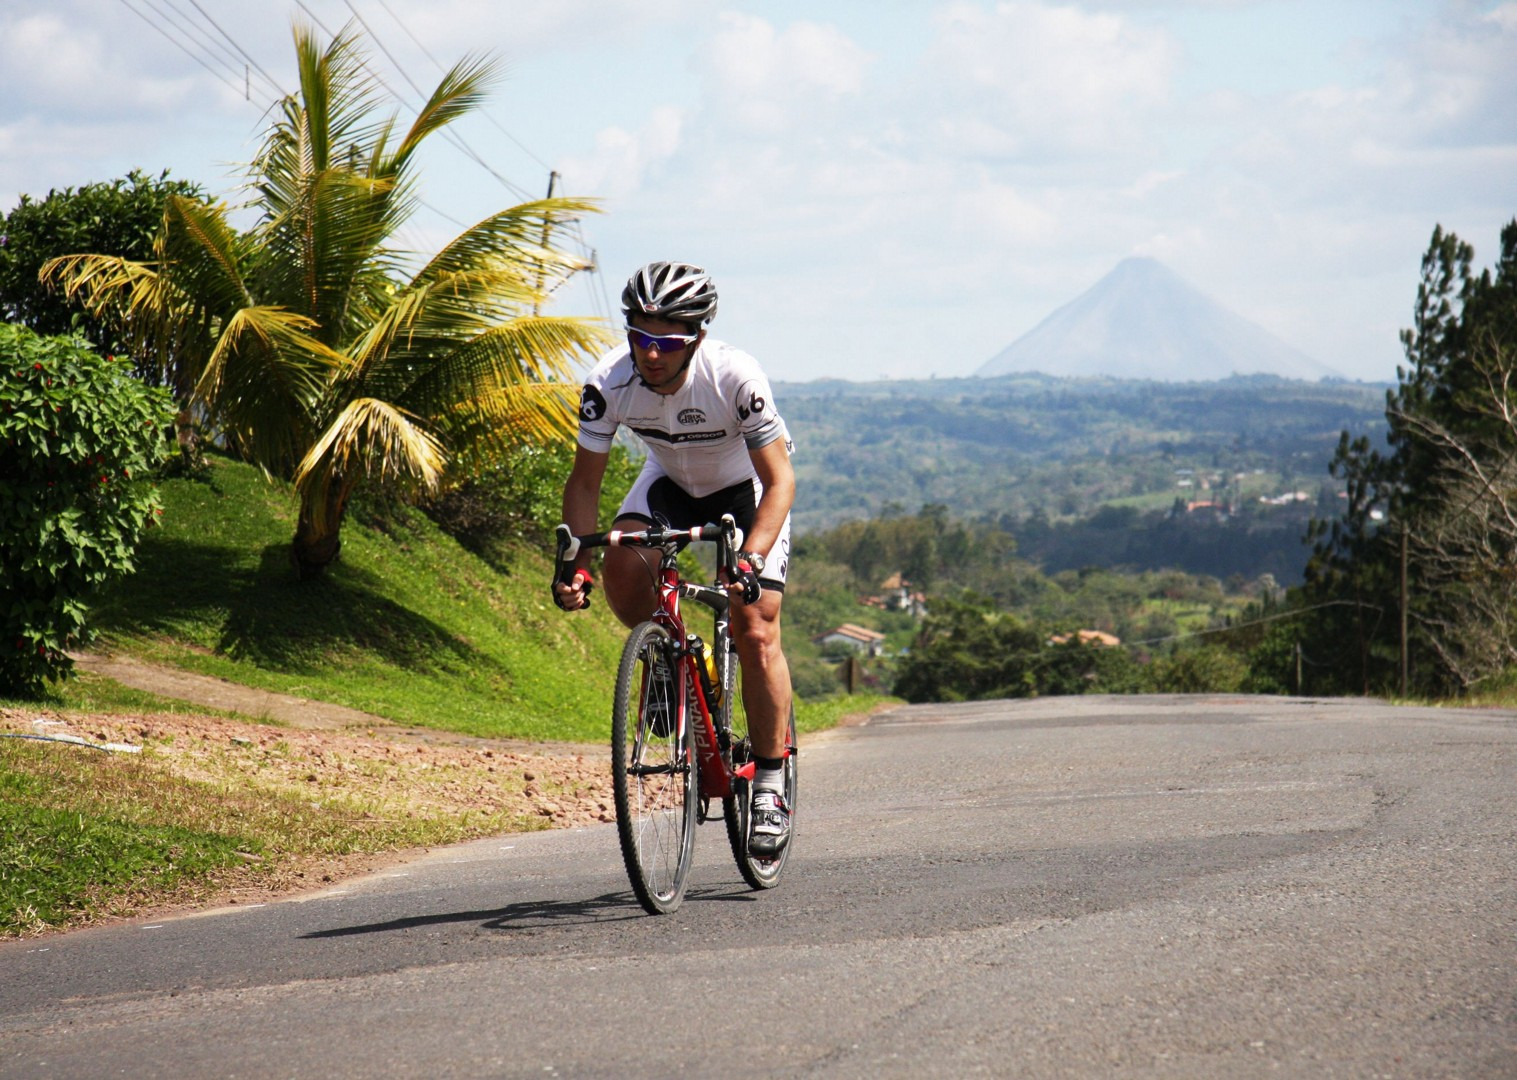 guided-road-cycling-holiday-ruta-de-los-volcanes-costa-rica.jpg - Costa Rica - Ruta de los Volcanes - Guided Road Cycling Holiday - Road Cycling